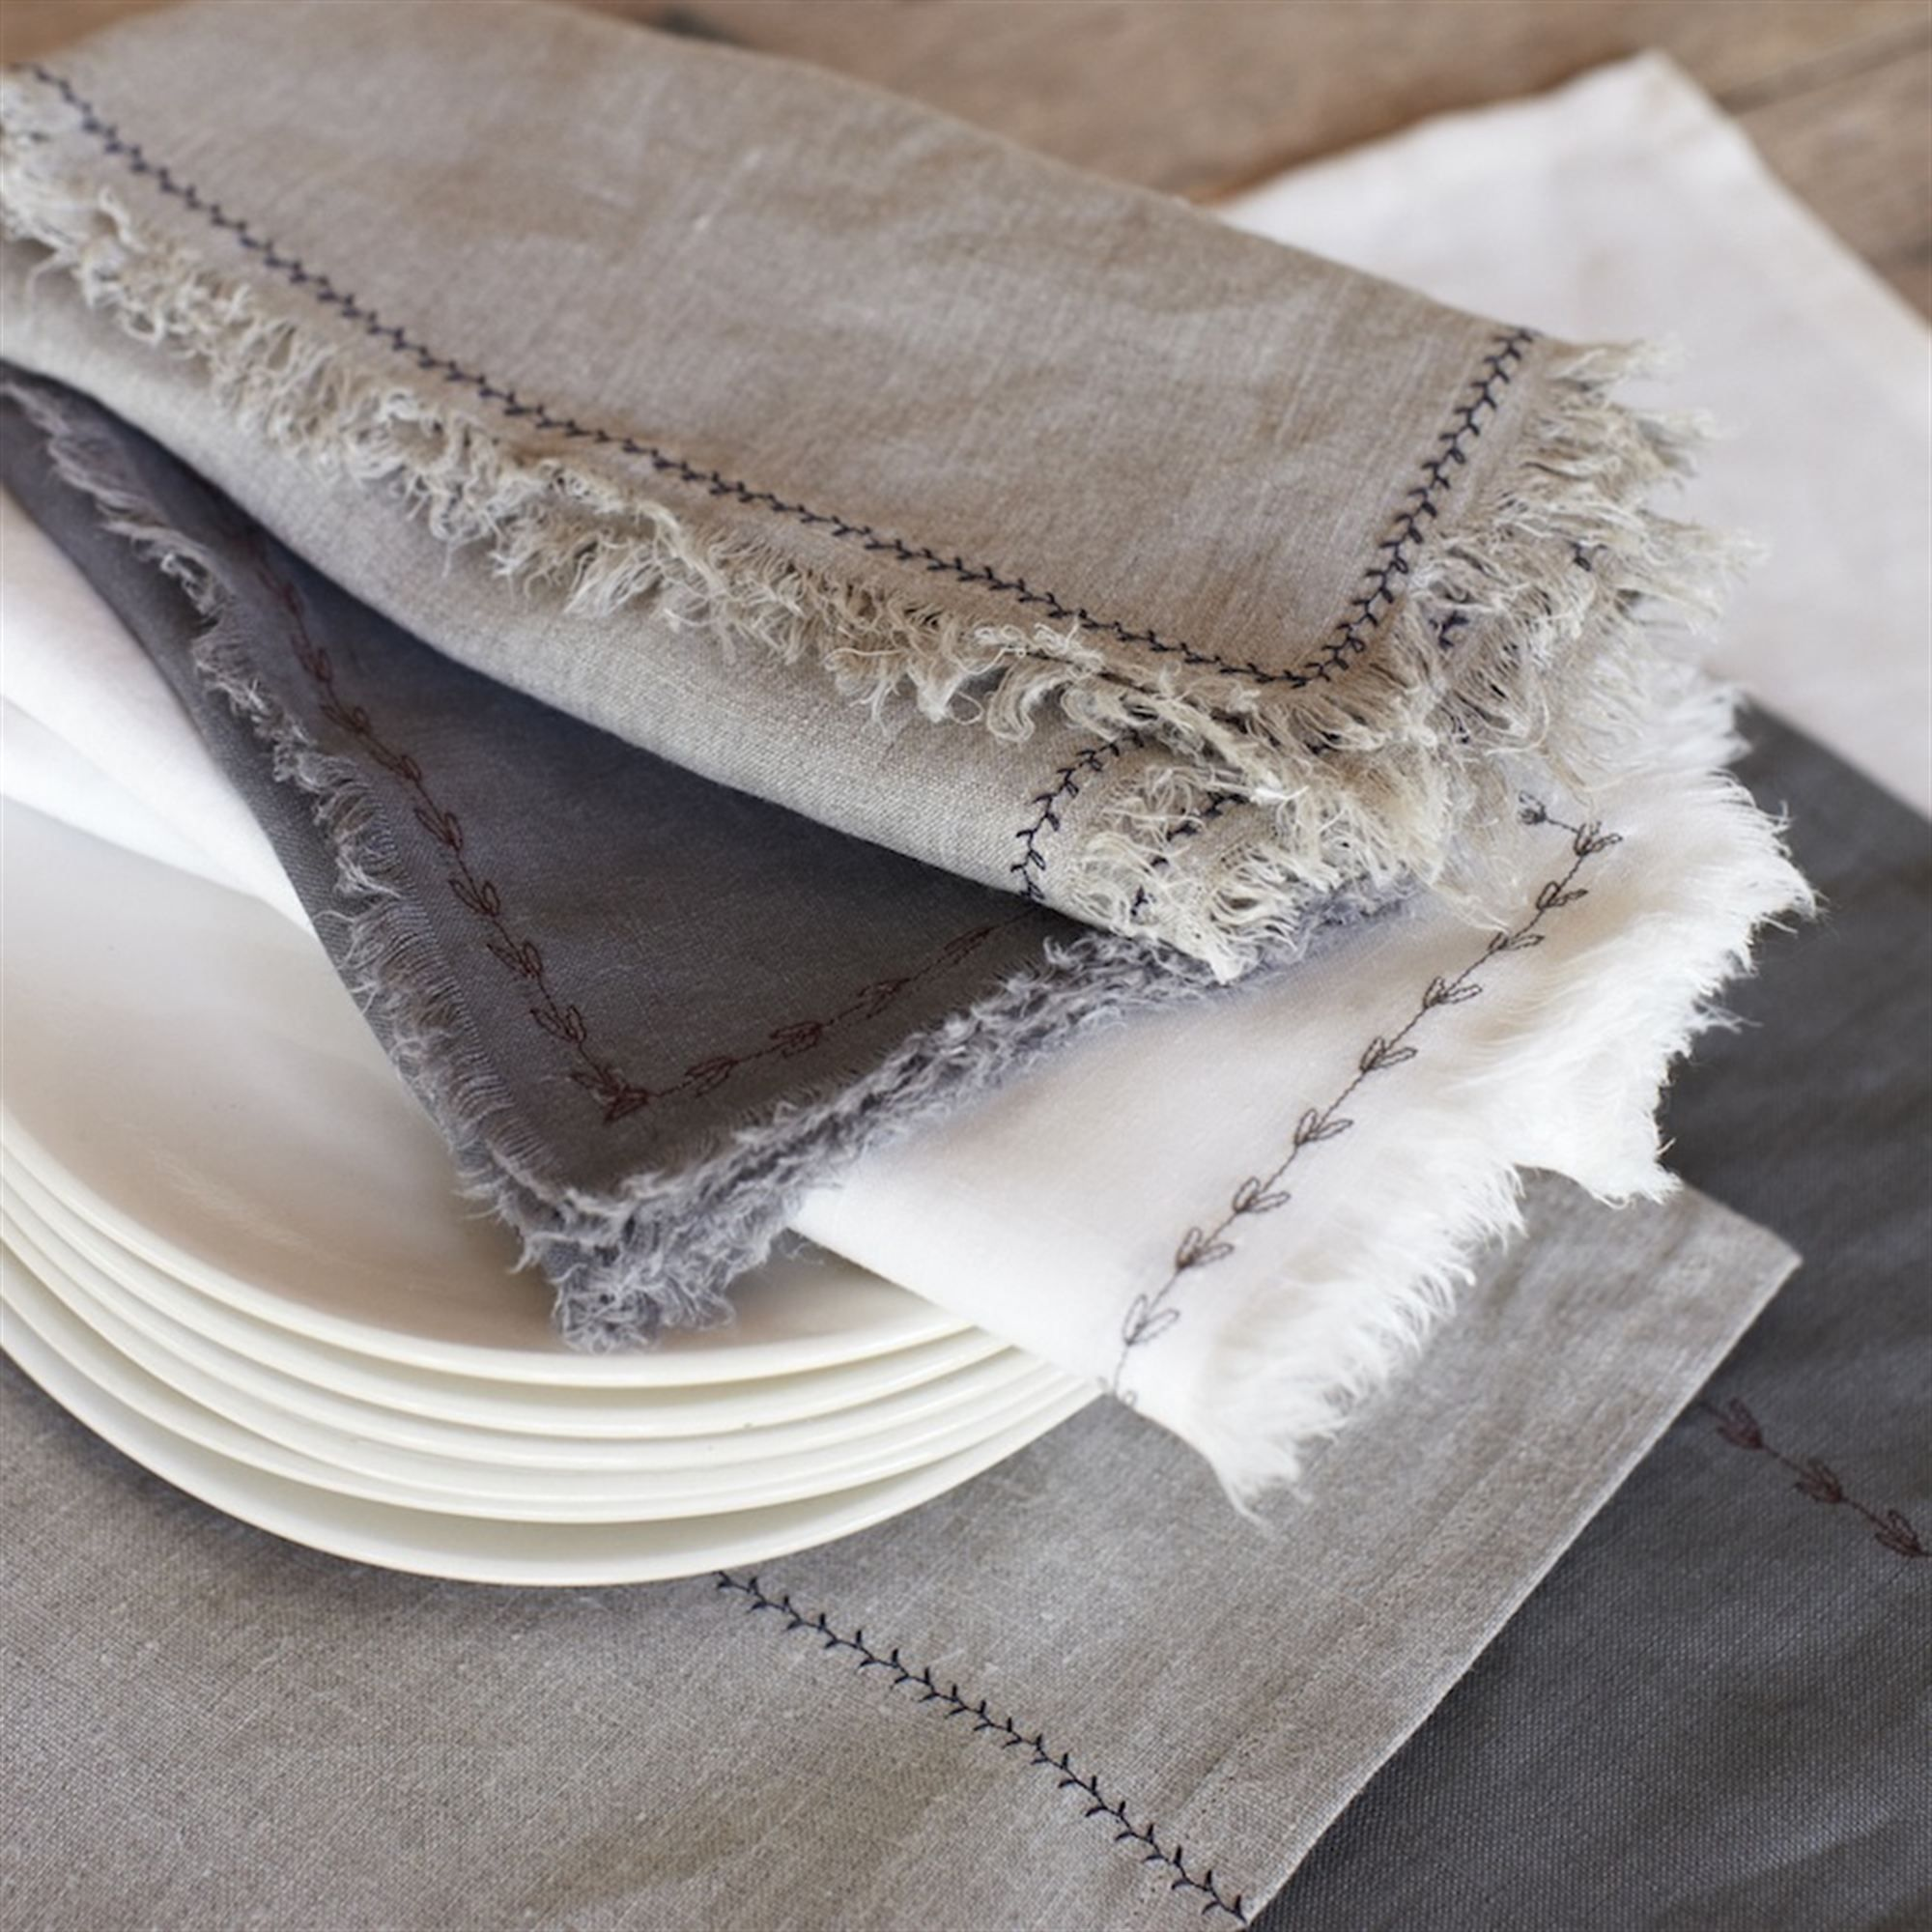 Linen Placemats And Napkins Wiring Diagrams Play Rockpaperscissorsspocklizard Online 5gesture Roshambo I Want To Make Something That Looks Like These Eco Friendly Rh Pinterest Com Antique